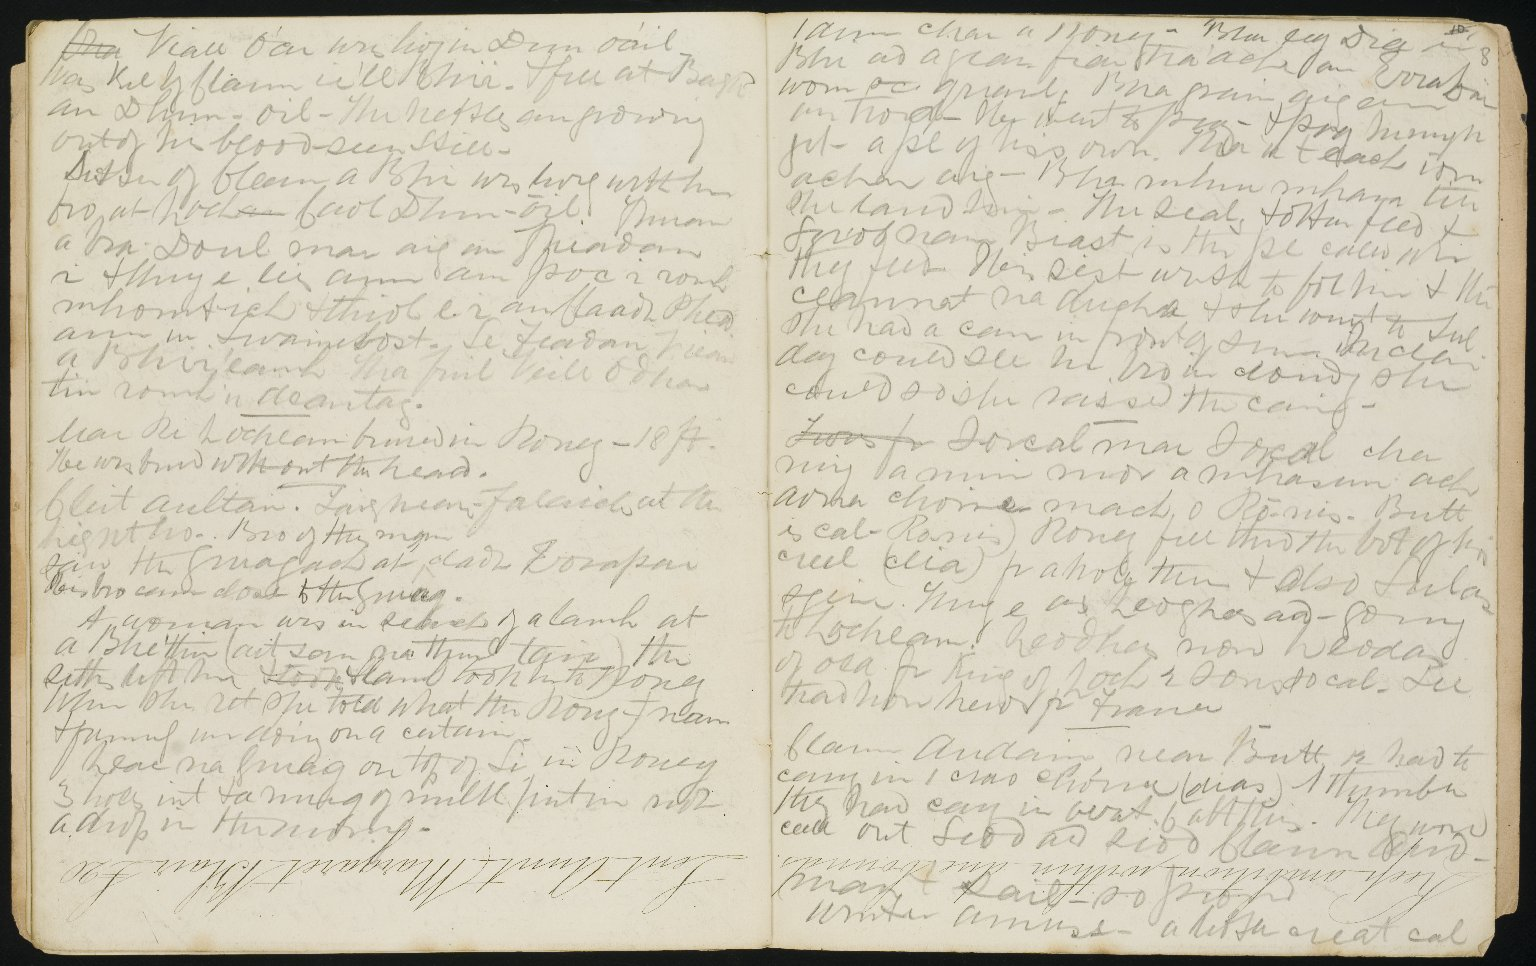 Field Notebook, Record of a Visit to Lewis, ff.7v-8r